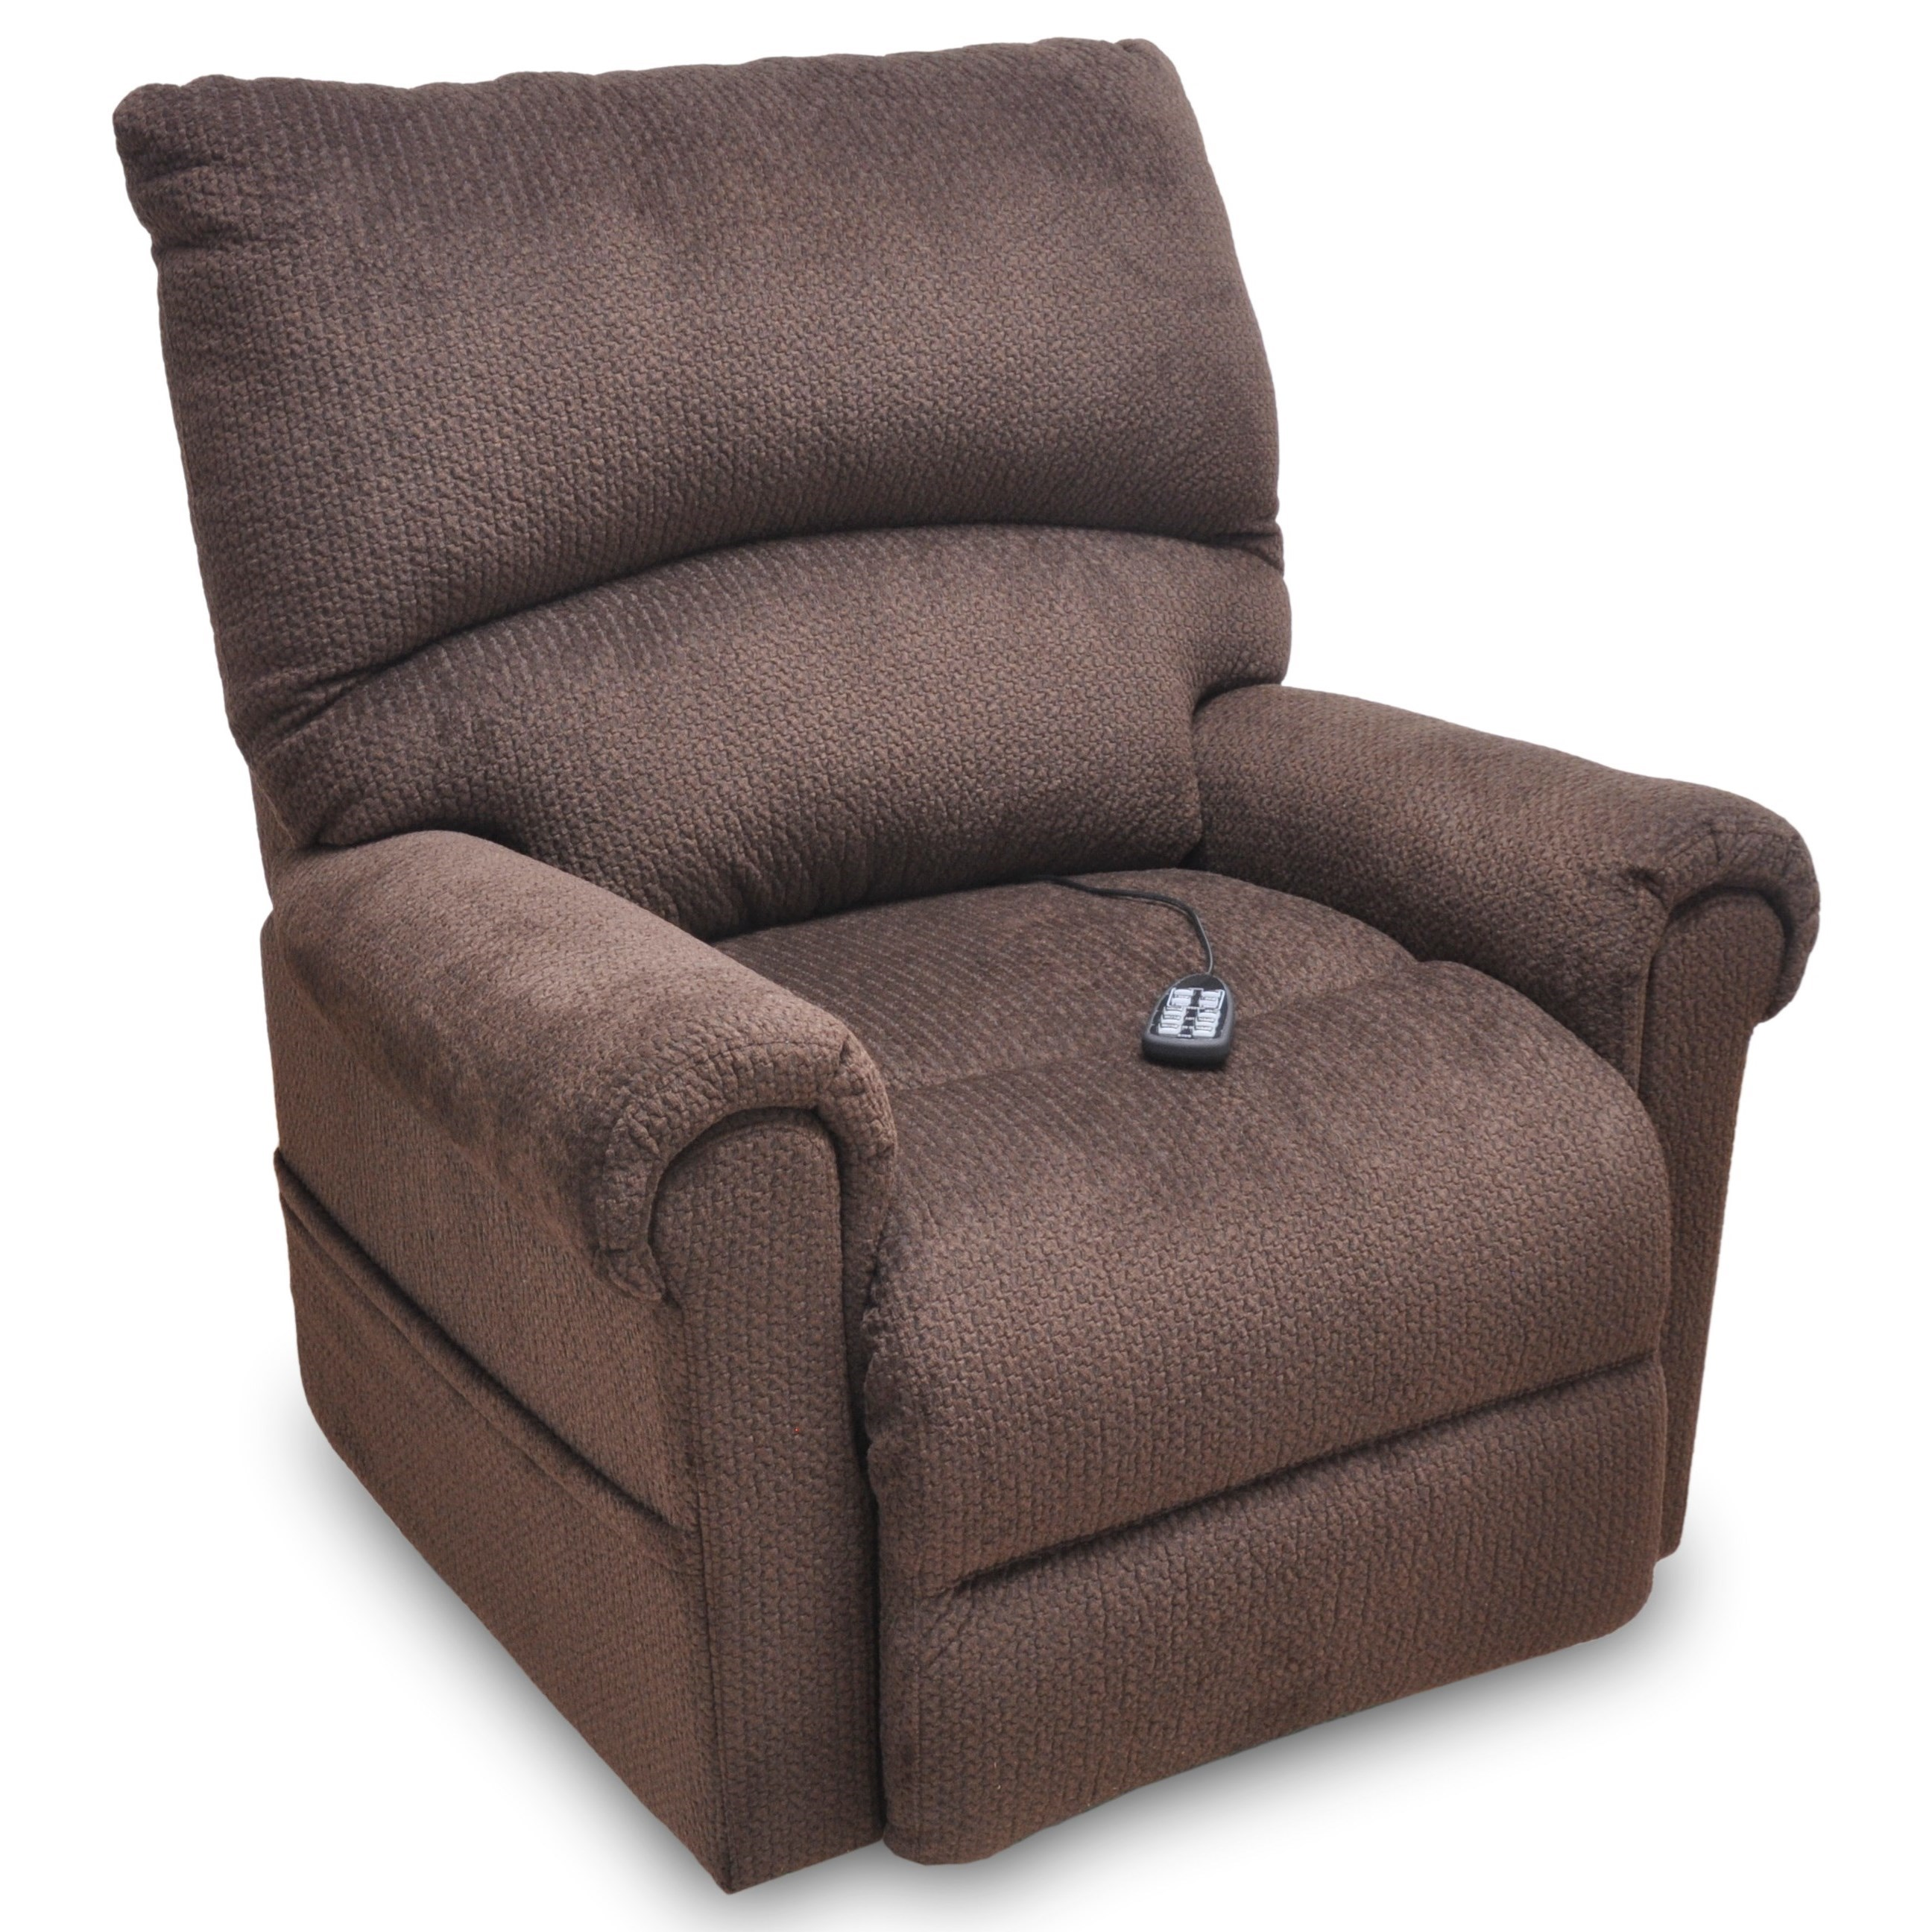 Franklin Franklin Recliners Independence Motor Bed Lift Chair - Item Number: 4464-1608-12